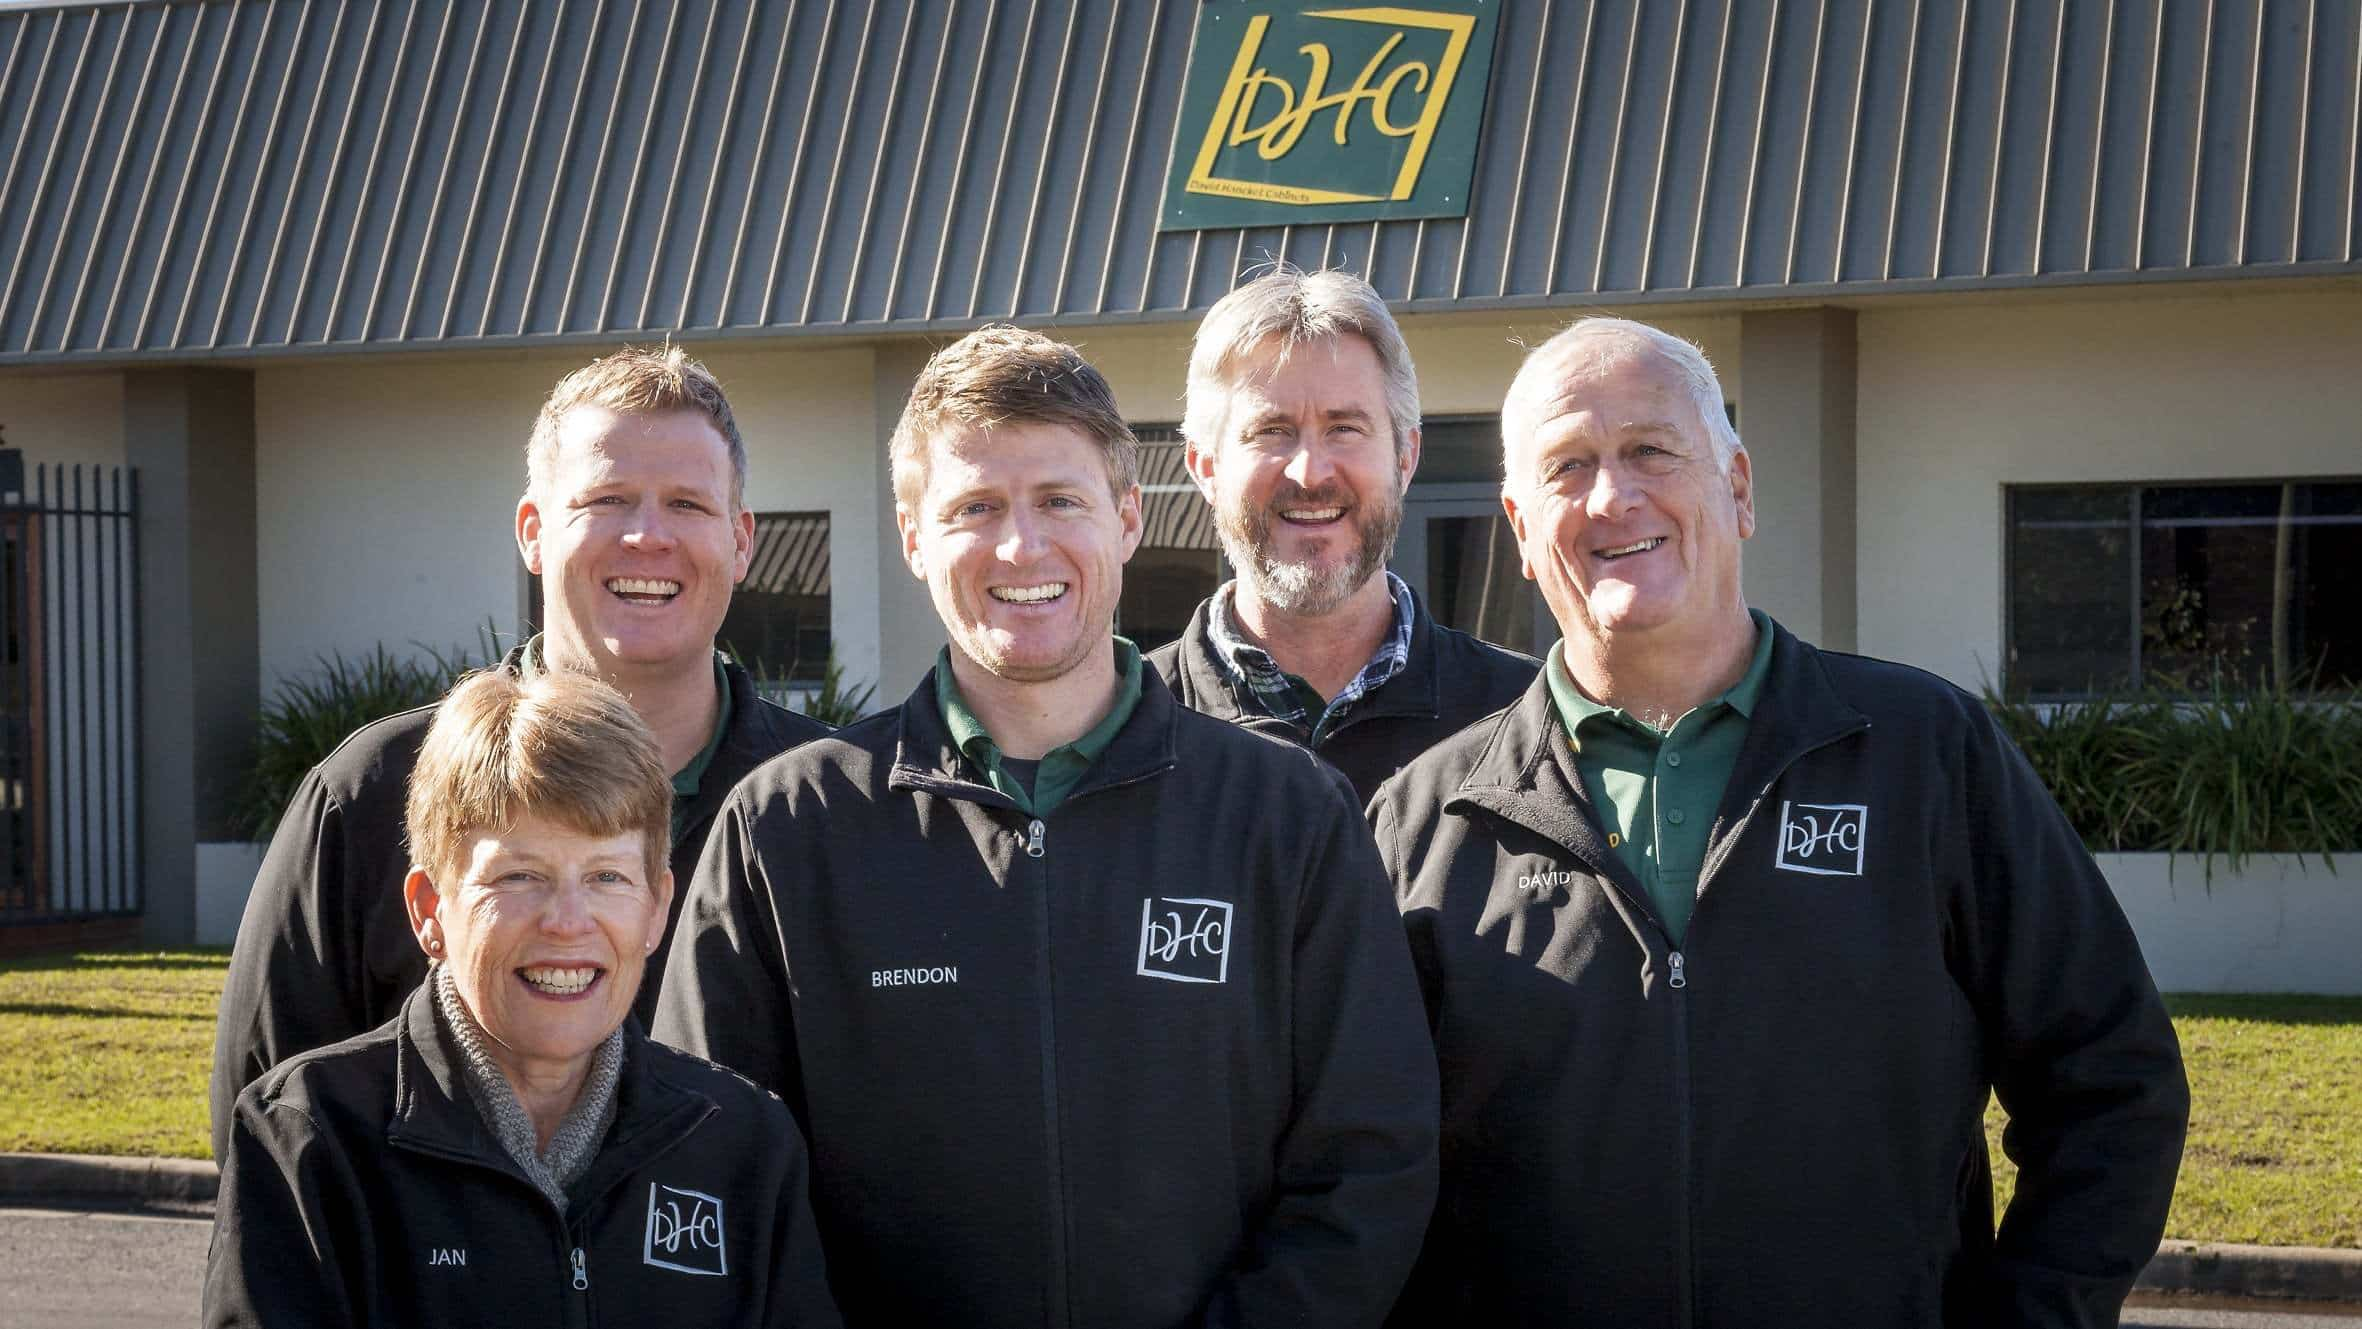 The David Hanckel Cabinets Team